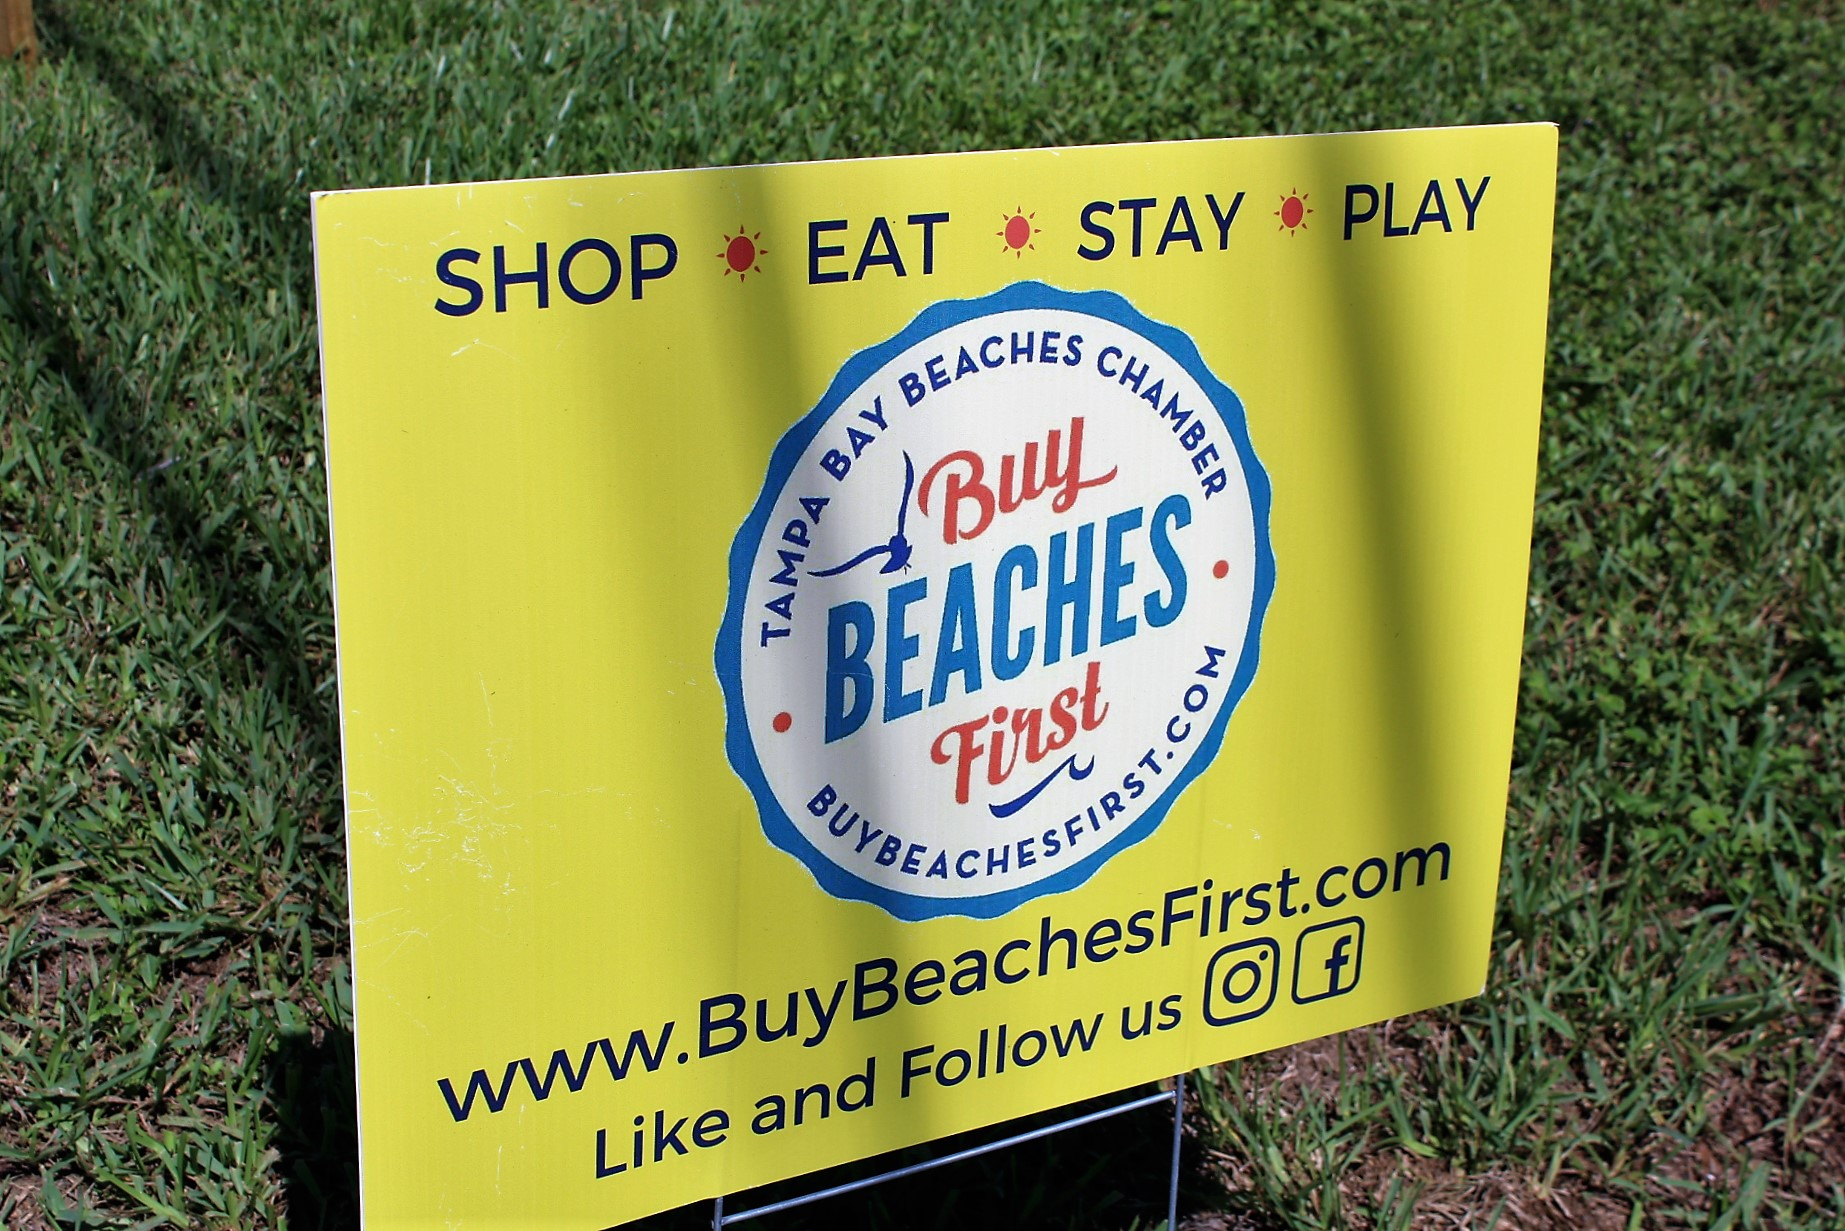 """A yellow sign in a yard that reads """"Shop, Eat, Stay, Play; Buy Beaches First; www.buybeachesfirst.com; Like and follow us on"""" Instagram and Facebook symbols."""